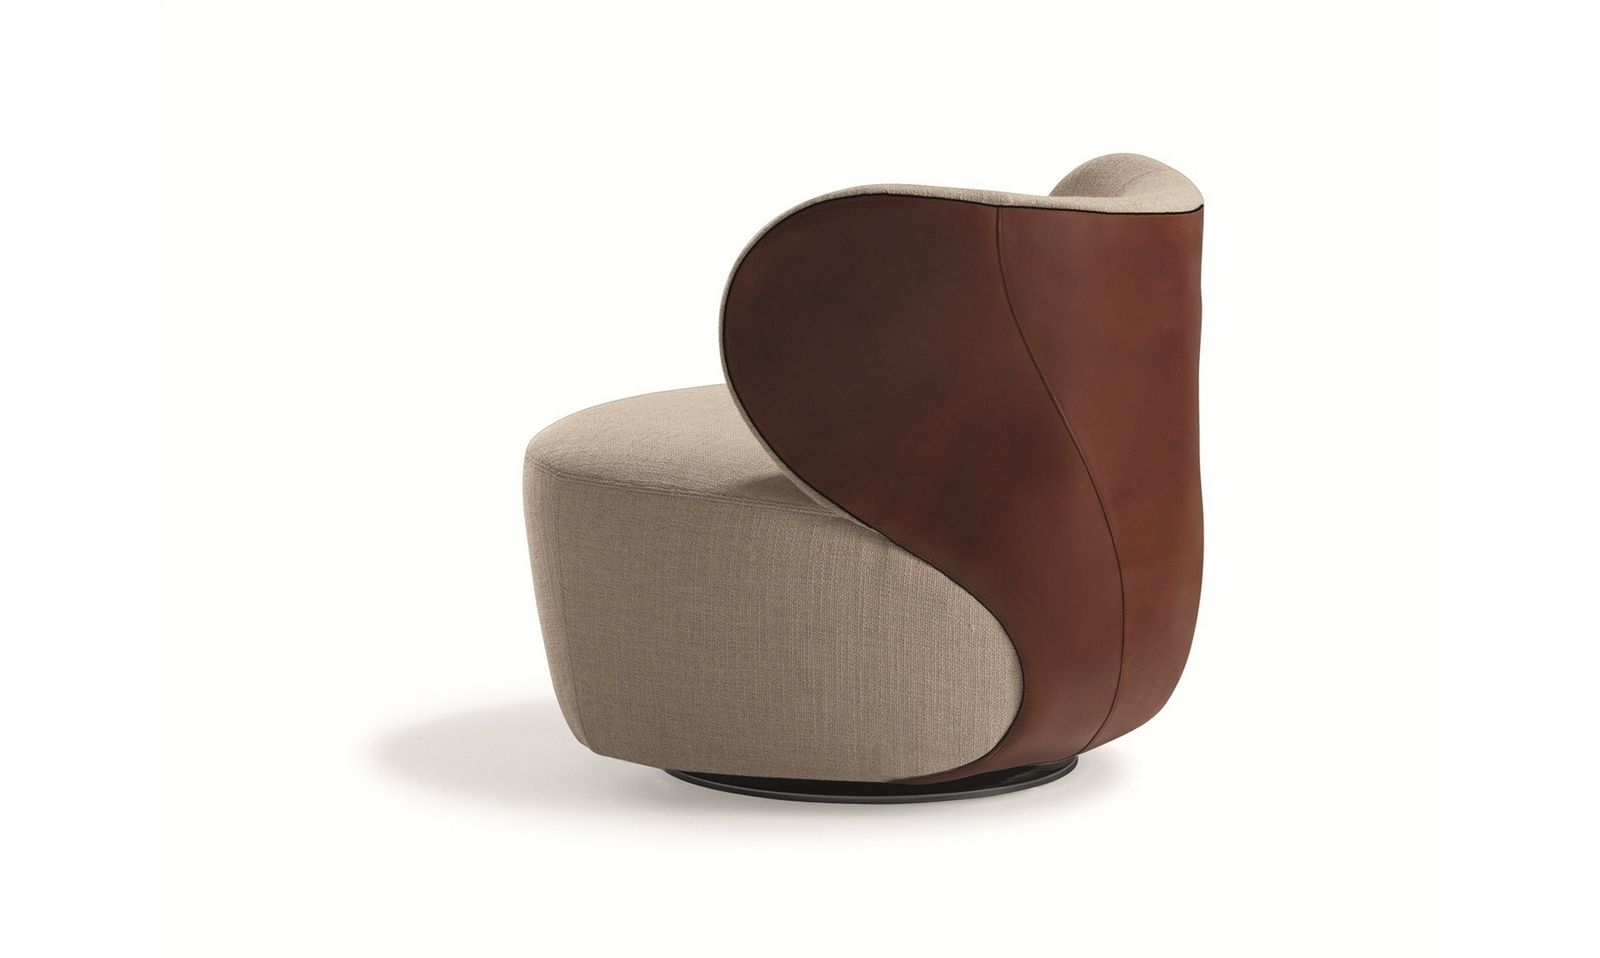 Boa Chair By Walter Knoll Furniture Design Knoll